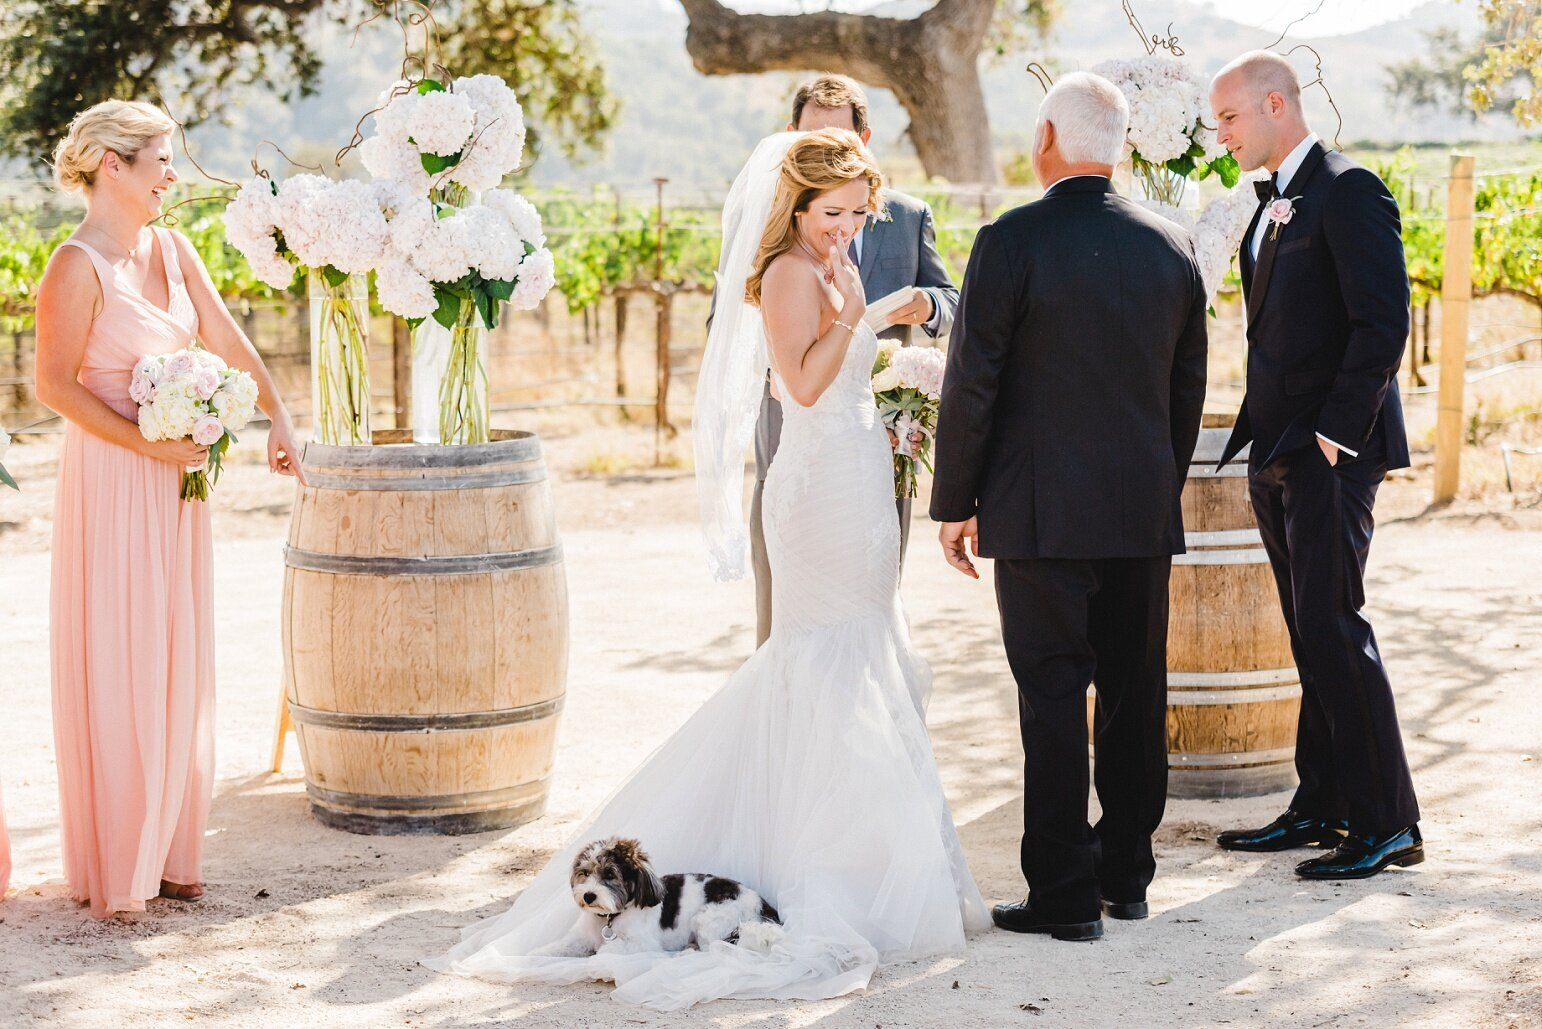 Wedding at Sunstone Winery